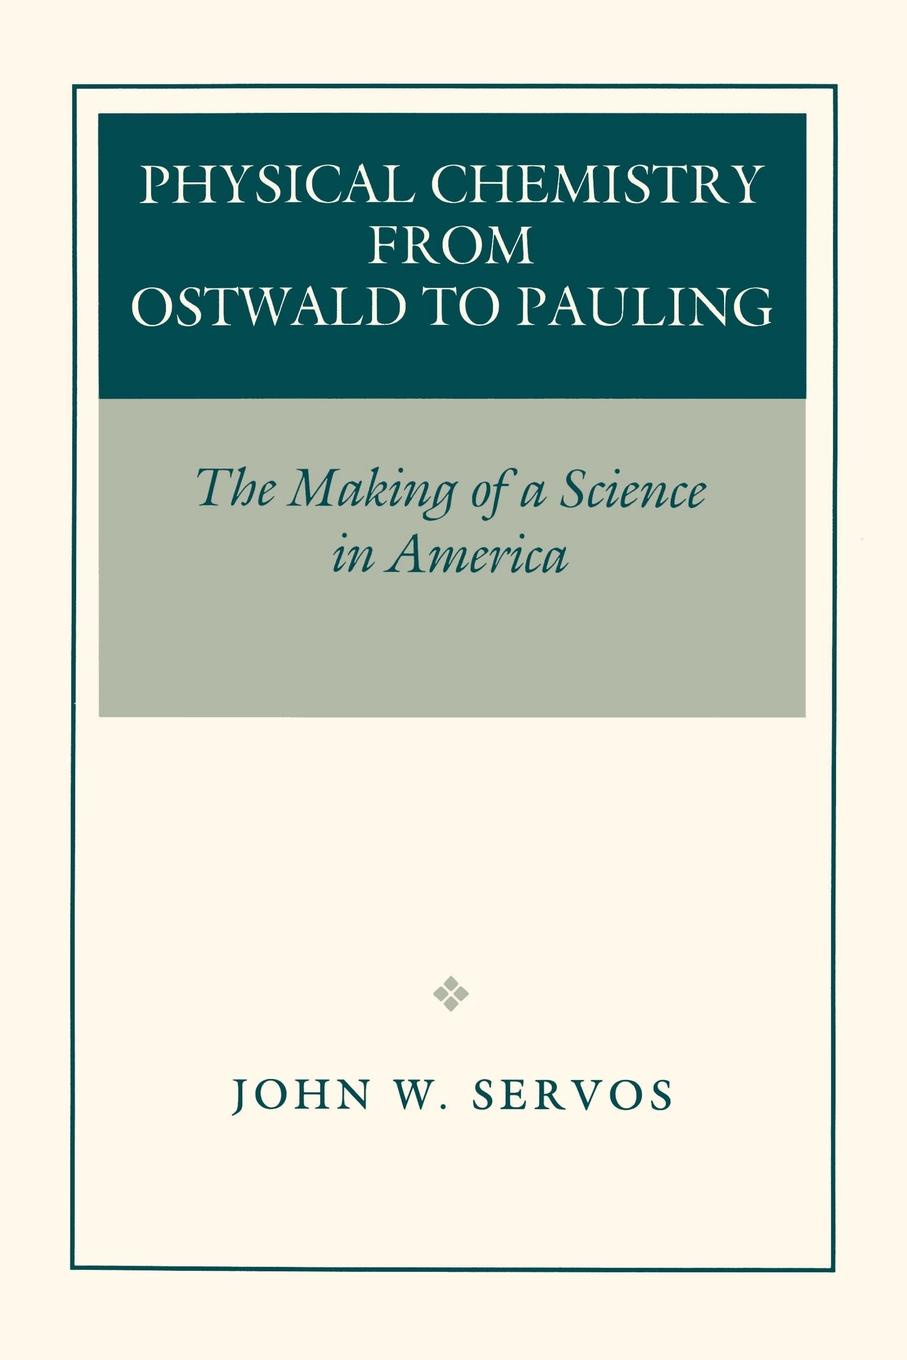 John W. Servos Physical Chemistry from Ostwald to Pauling. The Making of a Science in America kurt kolasinski w physical chemistry how chemistry works